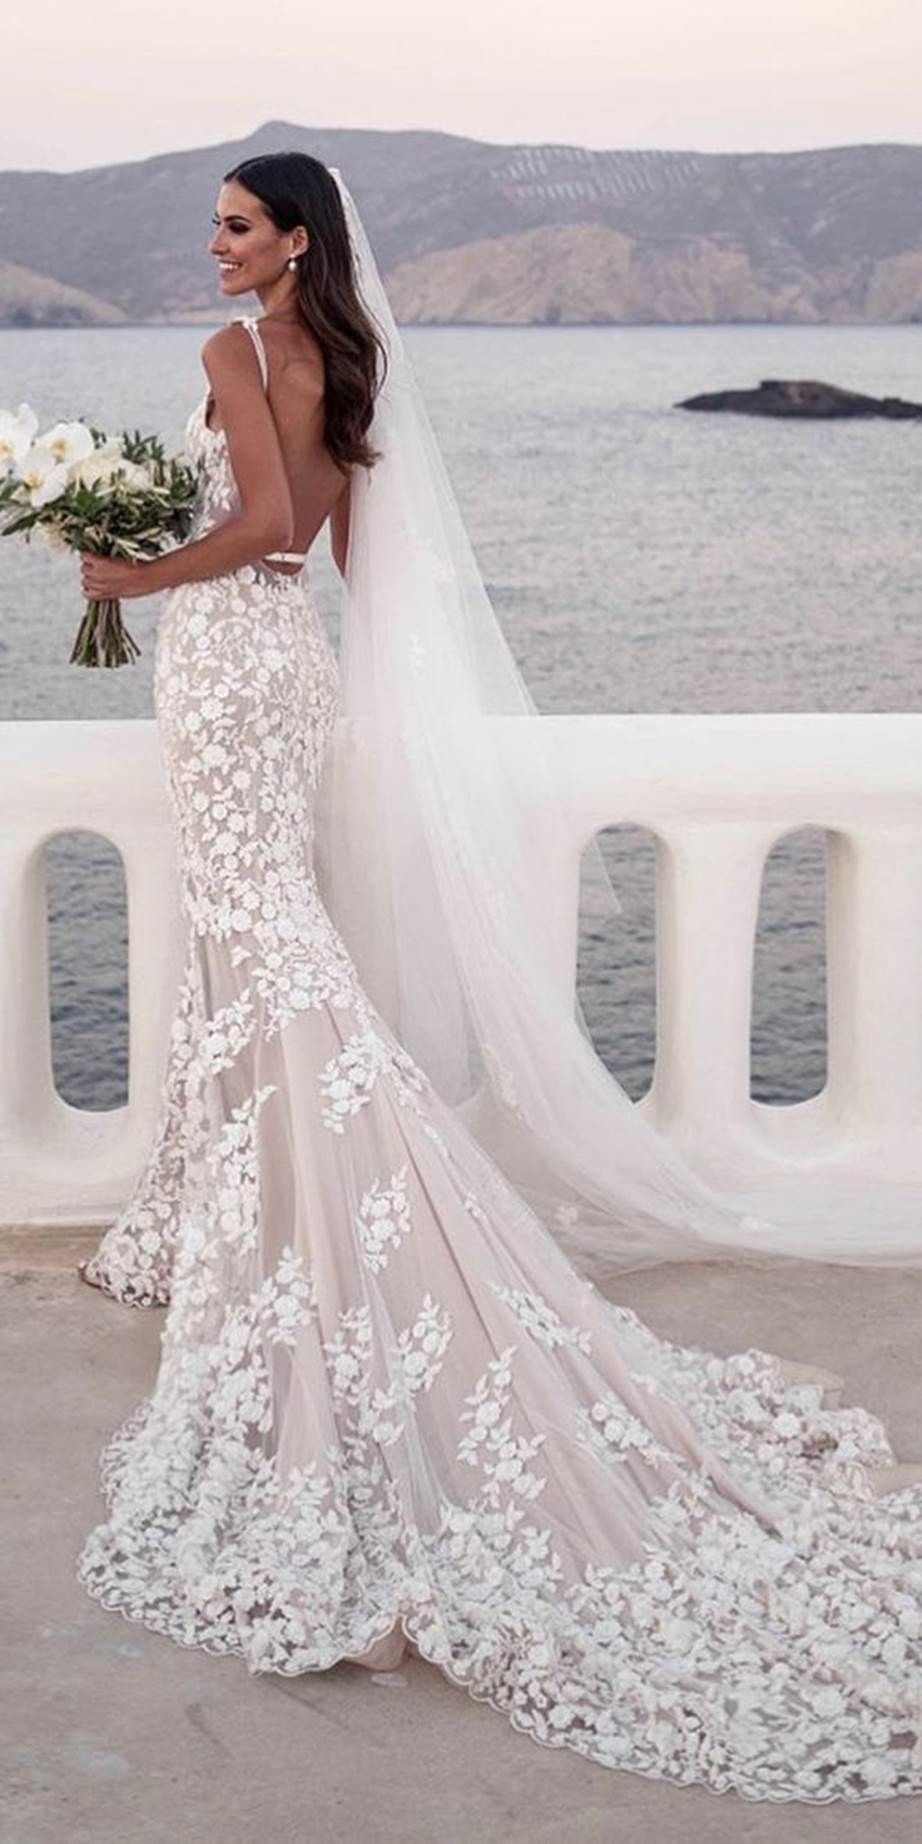 The Most Popular Pinterest Wedding Dress Searches In Each Country Lace Wedding Dress With Sleeves Wedding Dress Guide Wedding Dresses With Straps